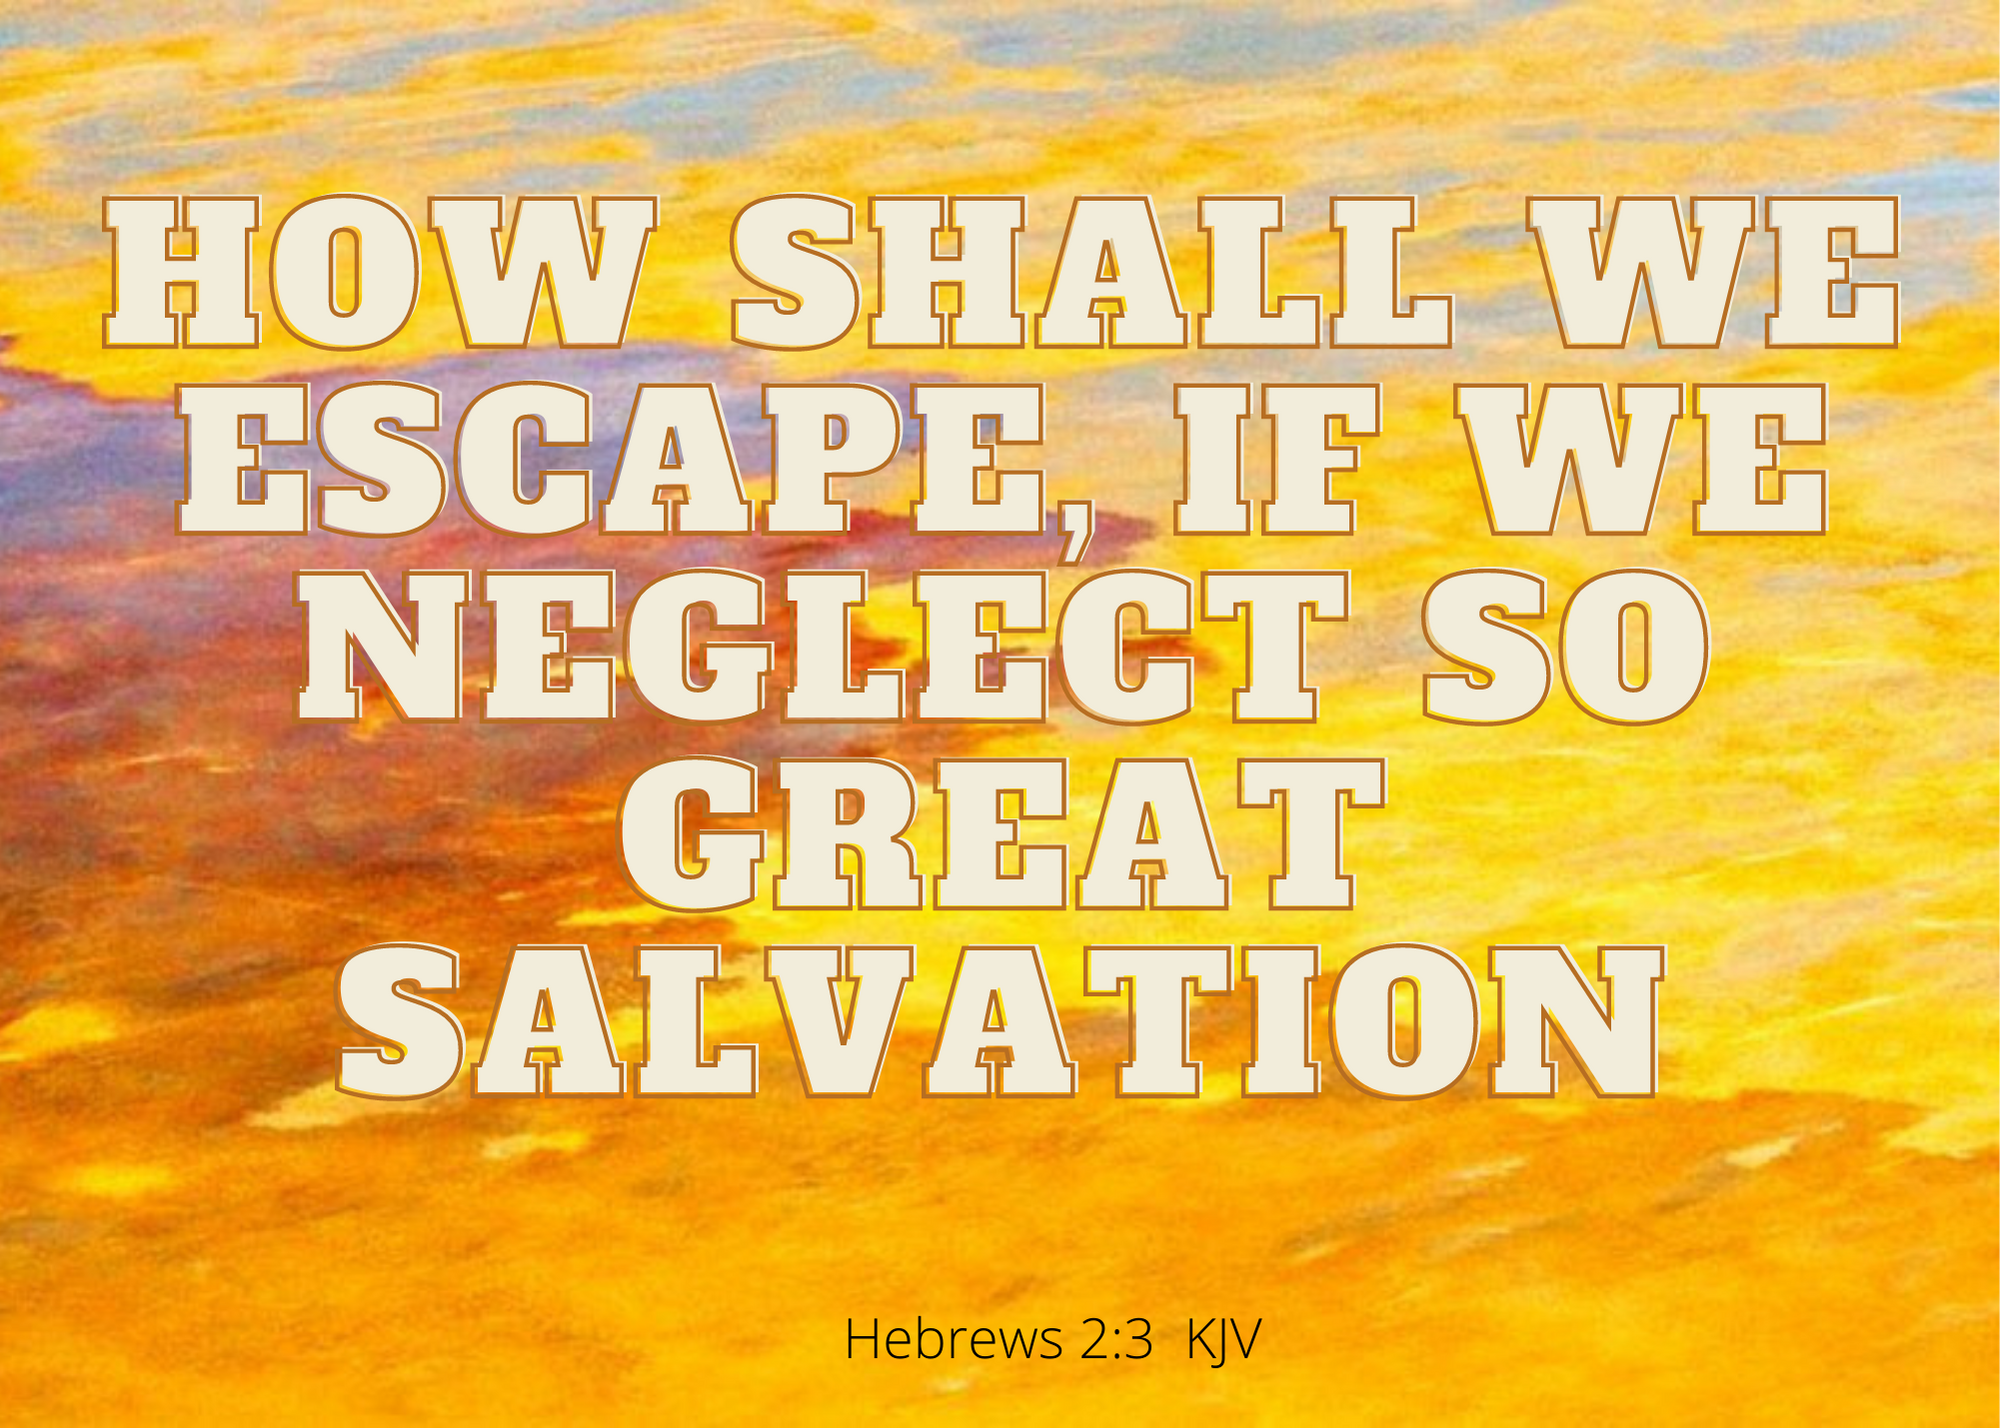 How shall we escape if we neglect such great salvation